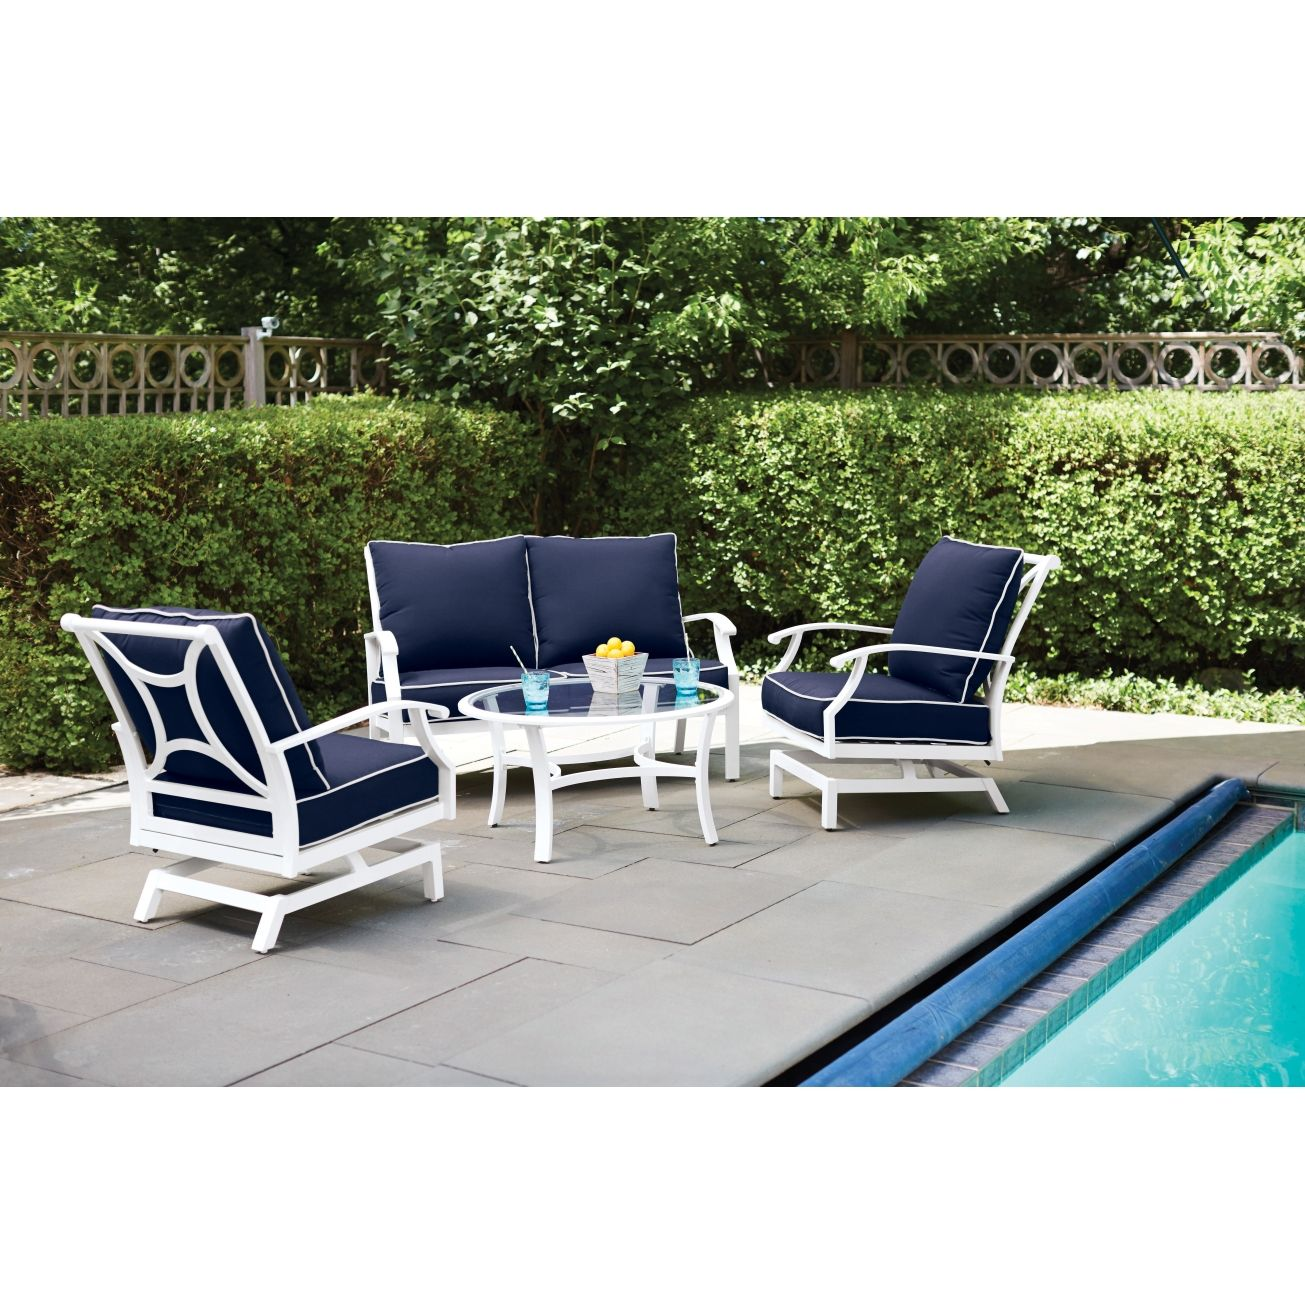 Ace Hardware Outdoor Furniture